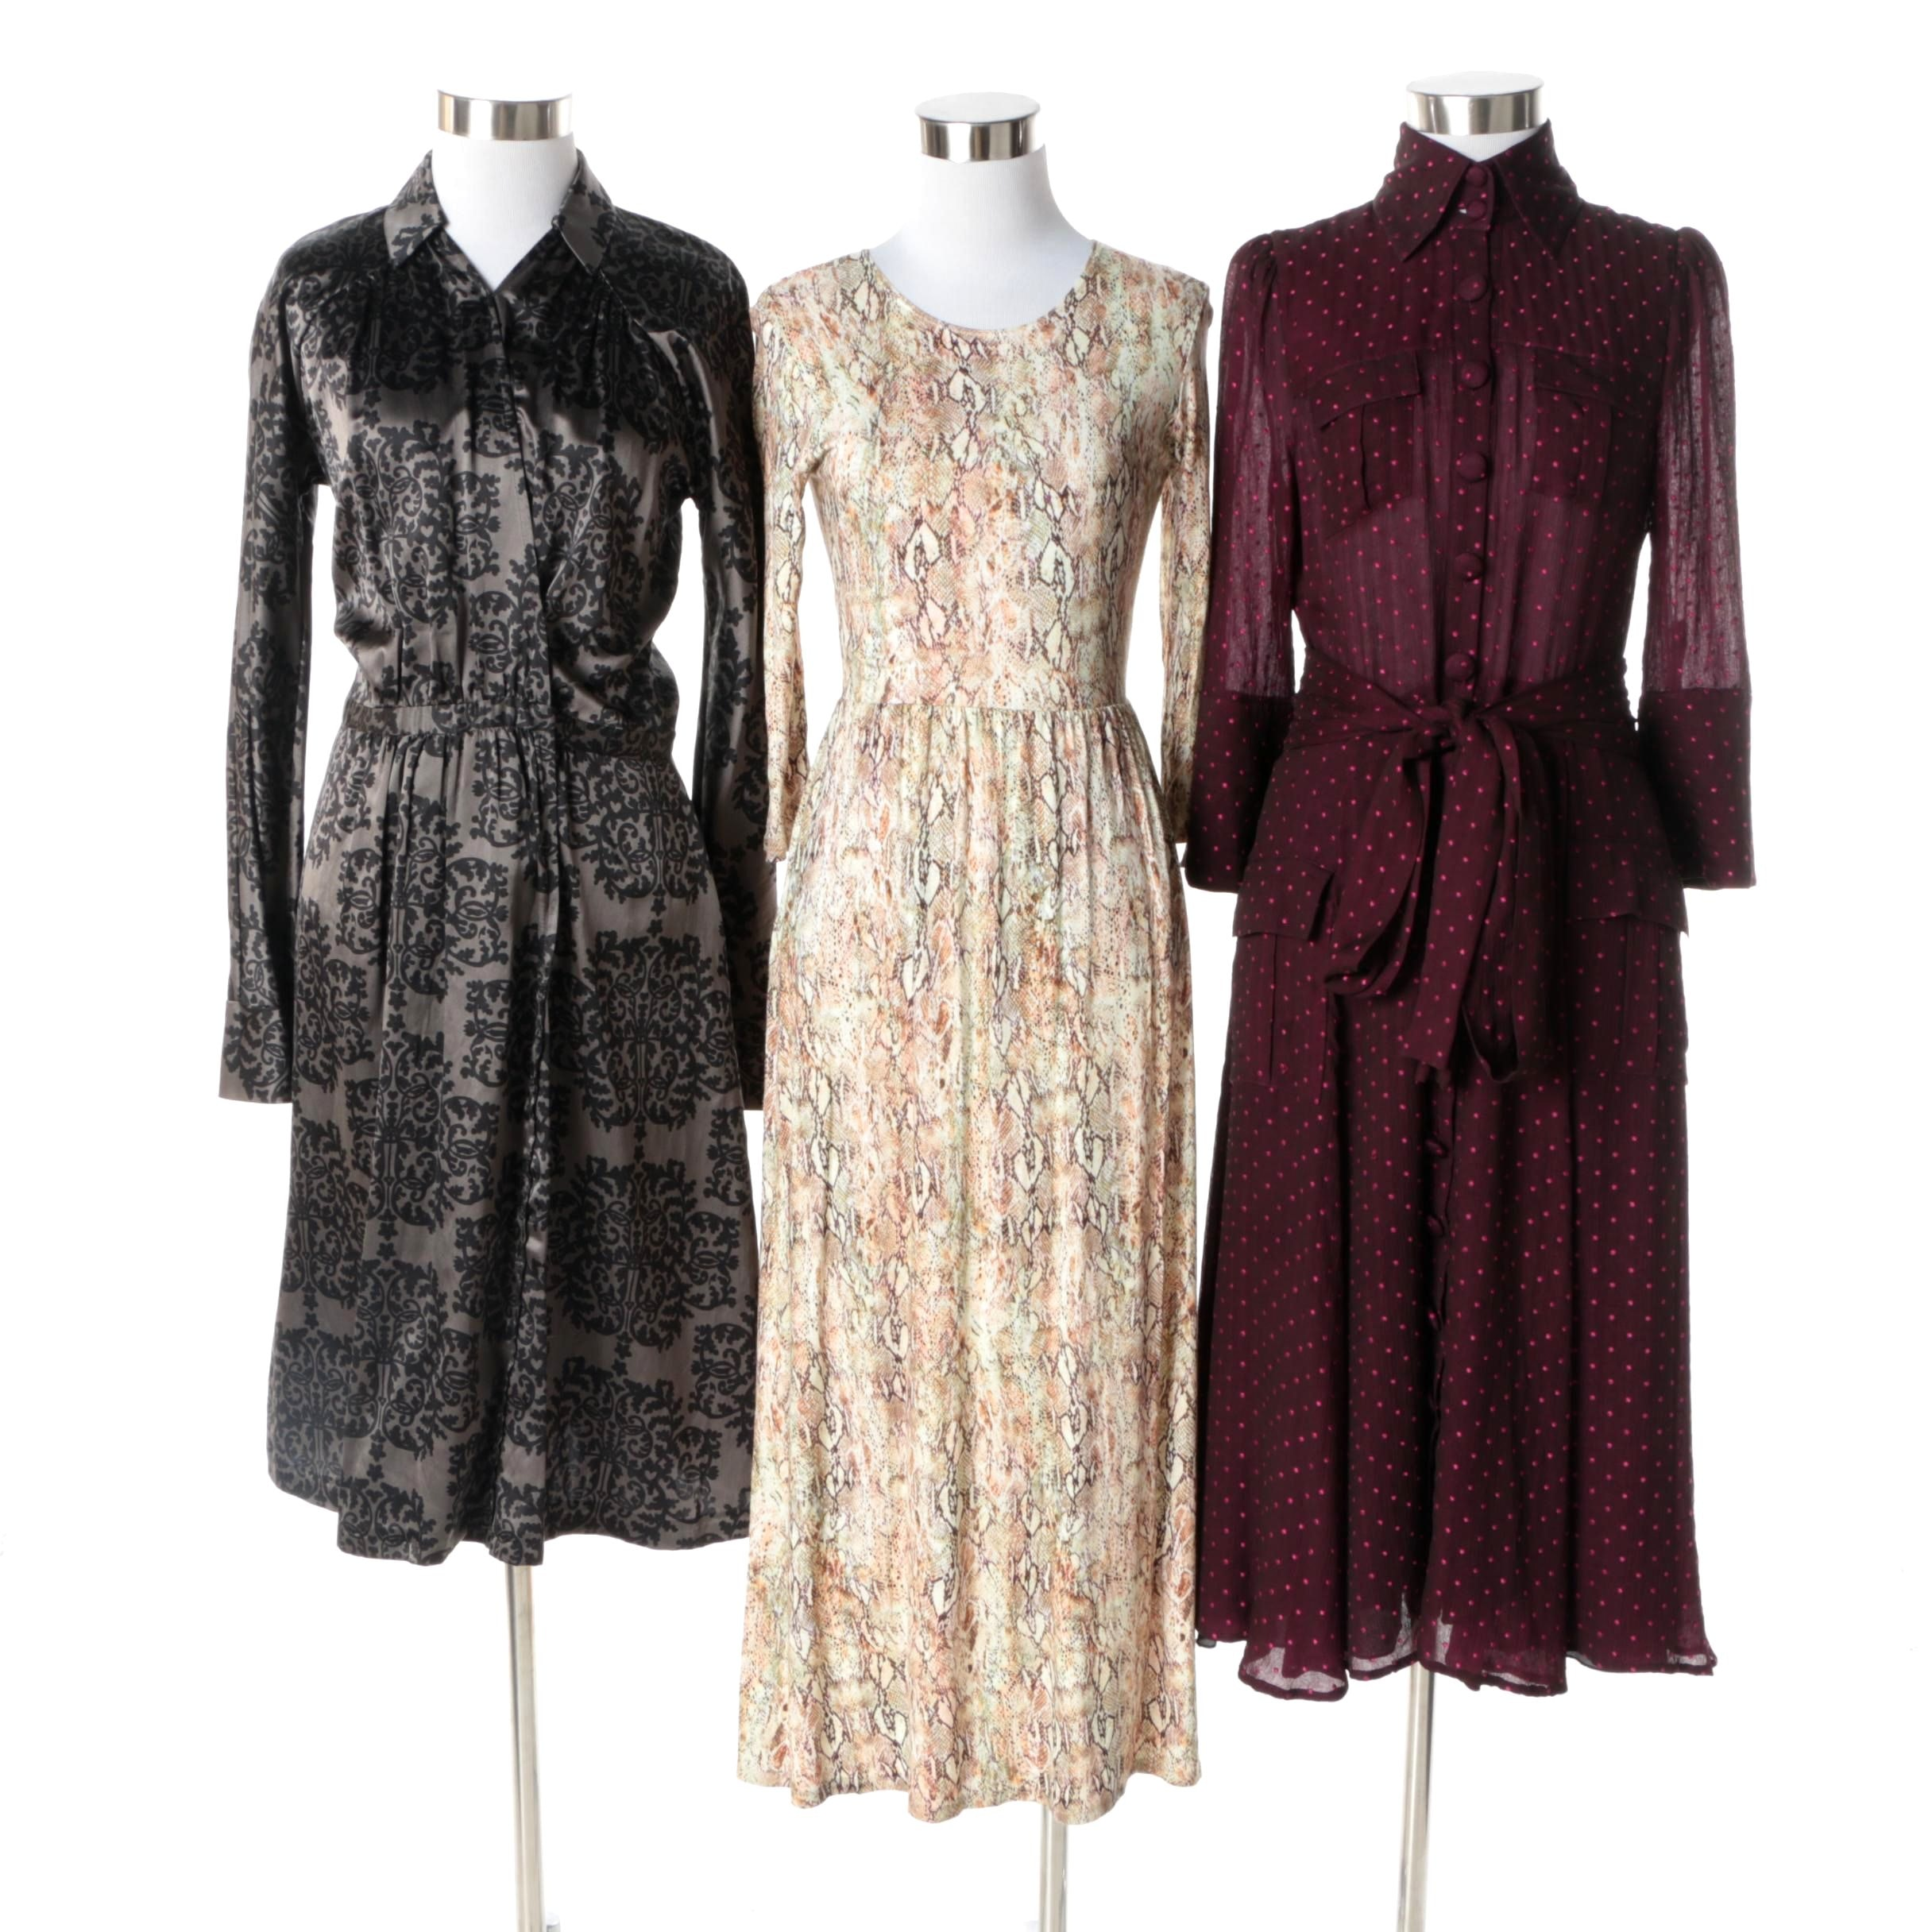 Women's Long Sleeve Dresses Including Diane von Furstenberg